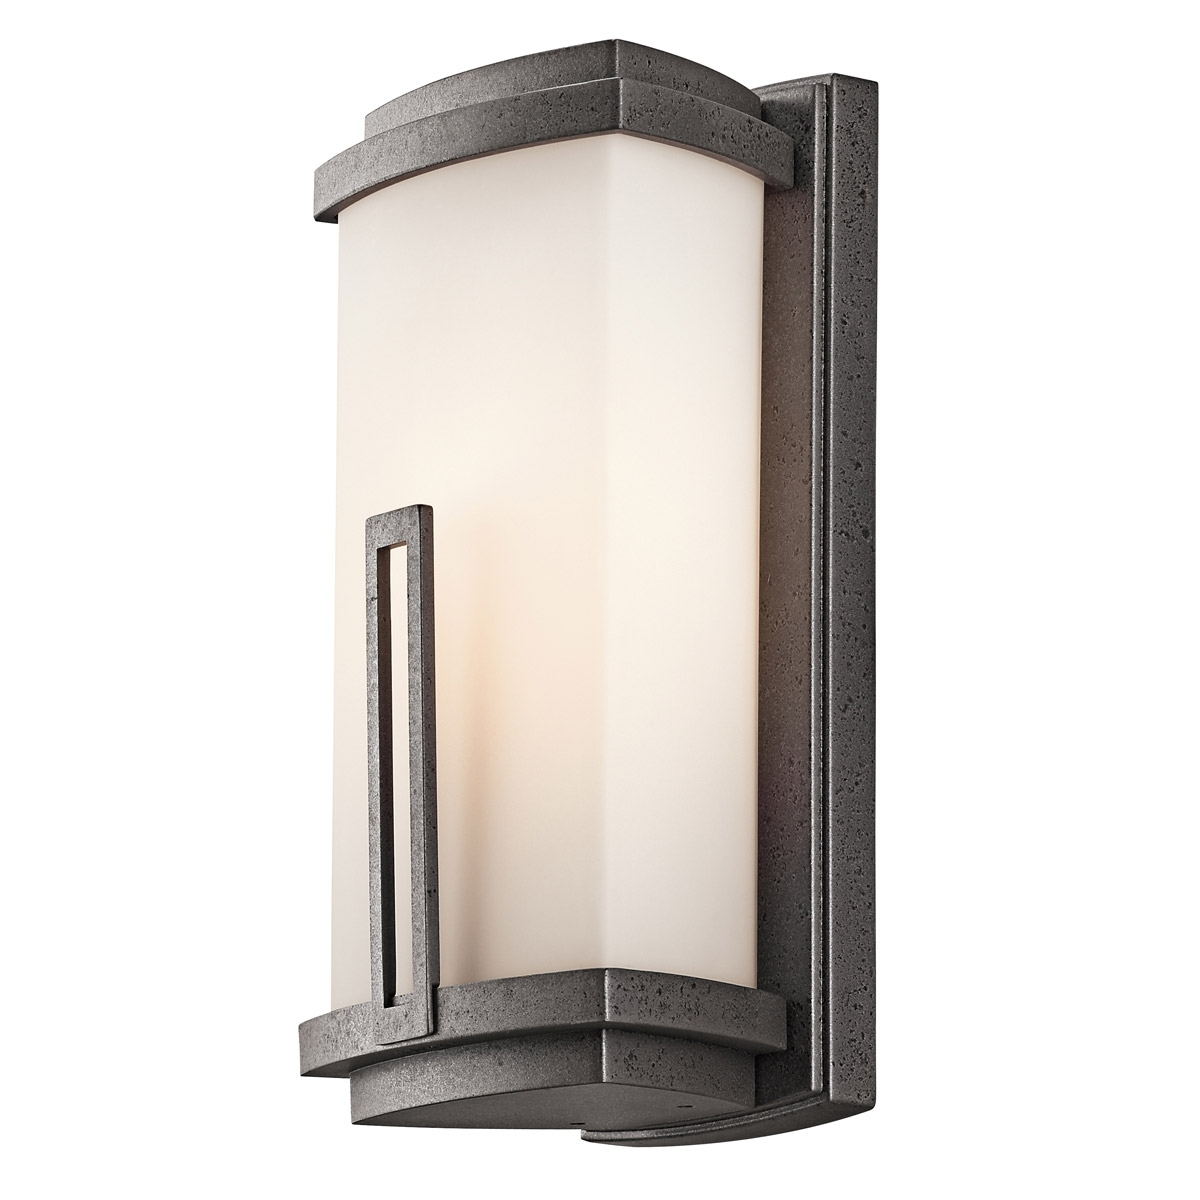 Contemporary Outdoor Wall Lighting Fixtures With Regard To 2018 49110Avi Leeds Outdoor Wall Sconce (View 7 of 20)